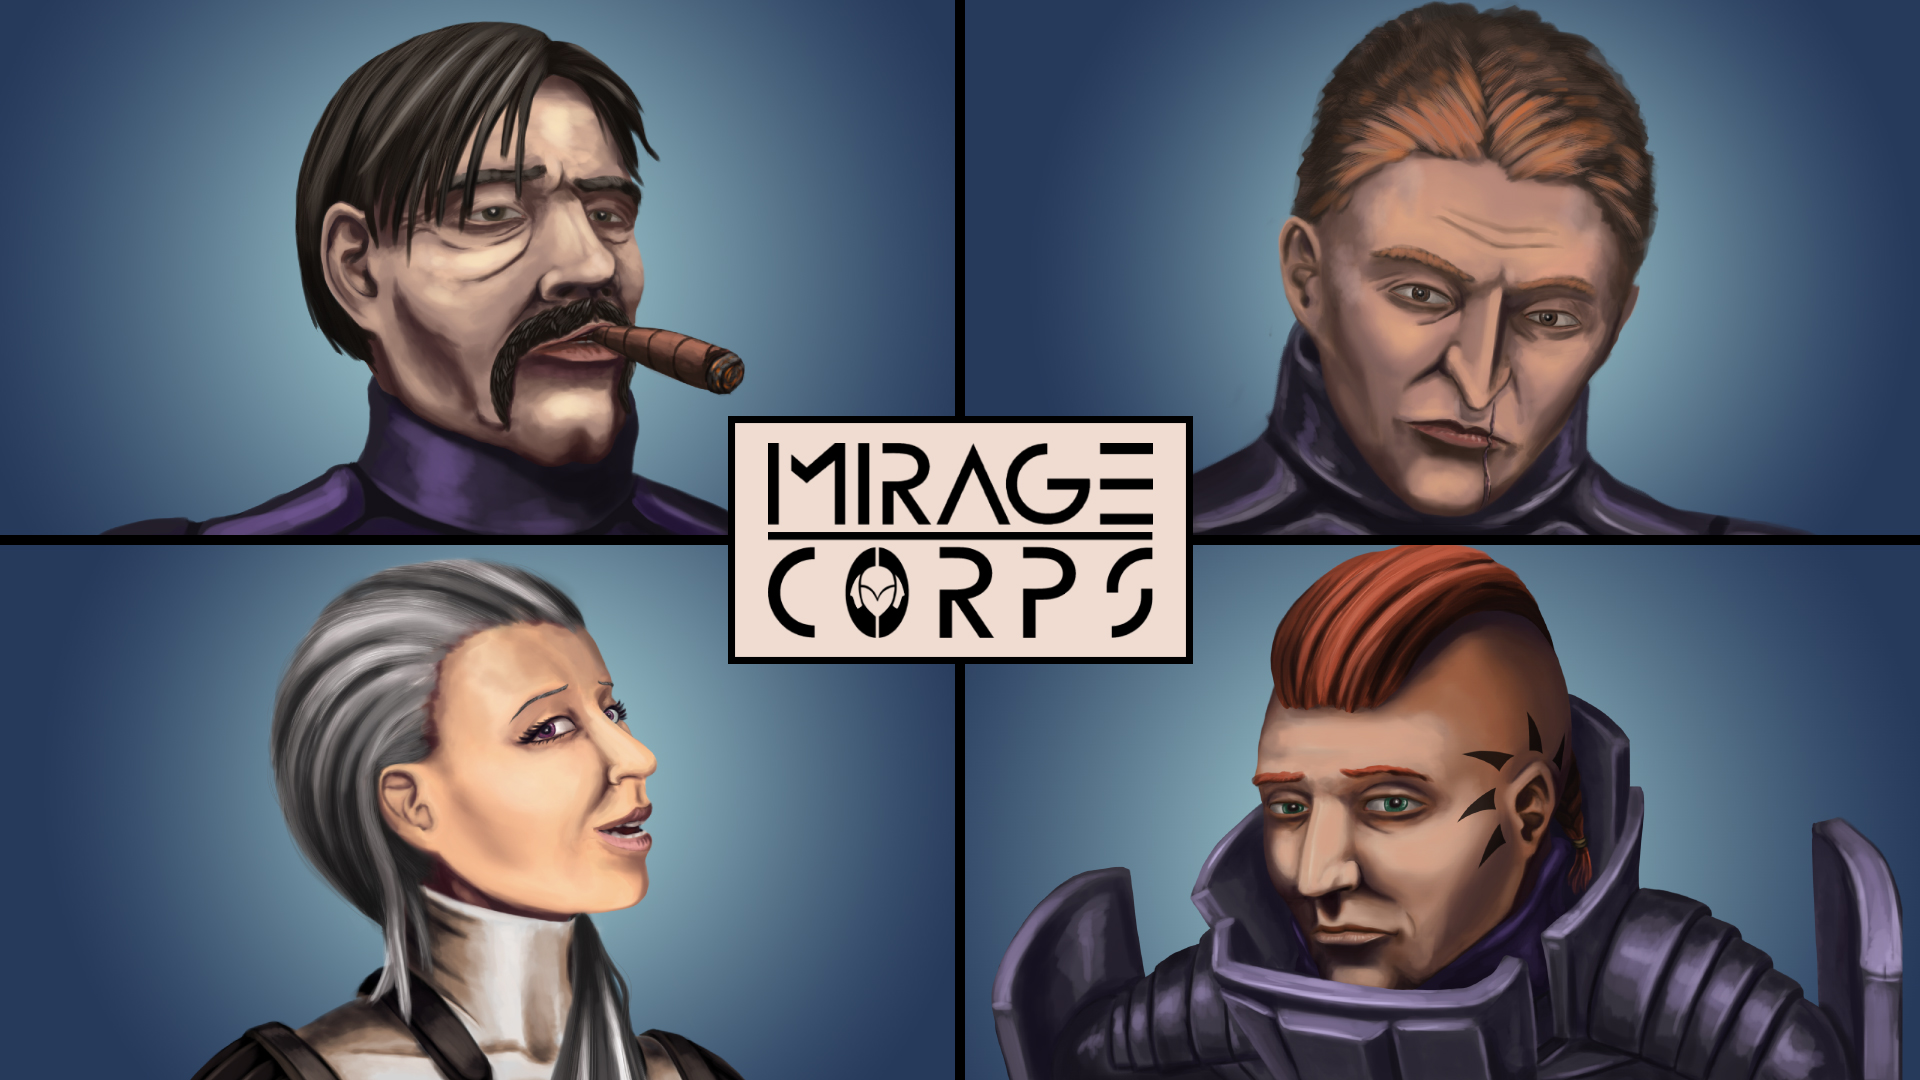 miragecorps-team1